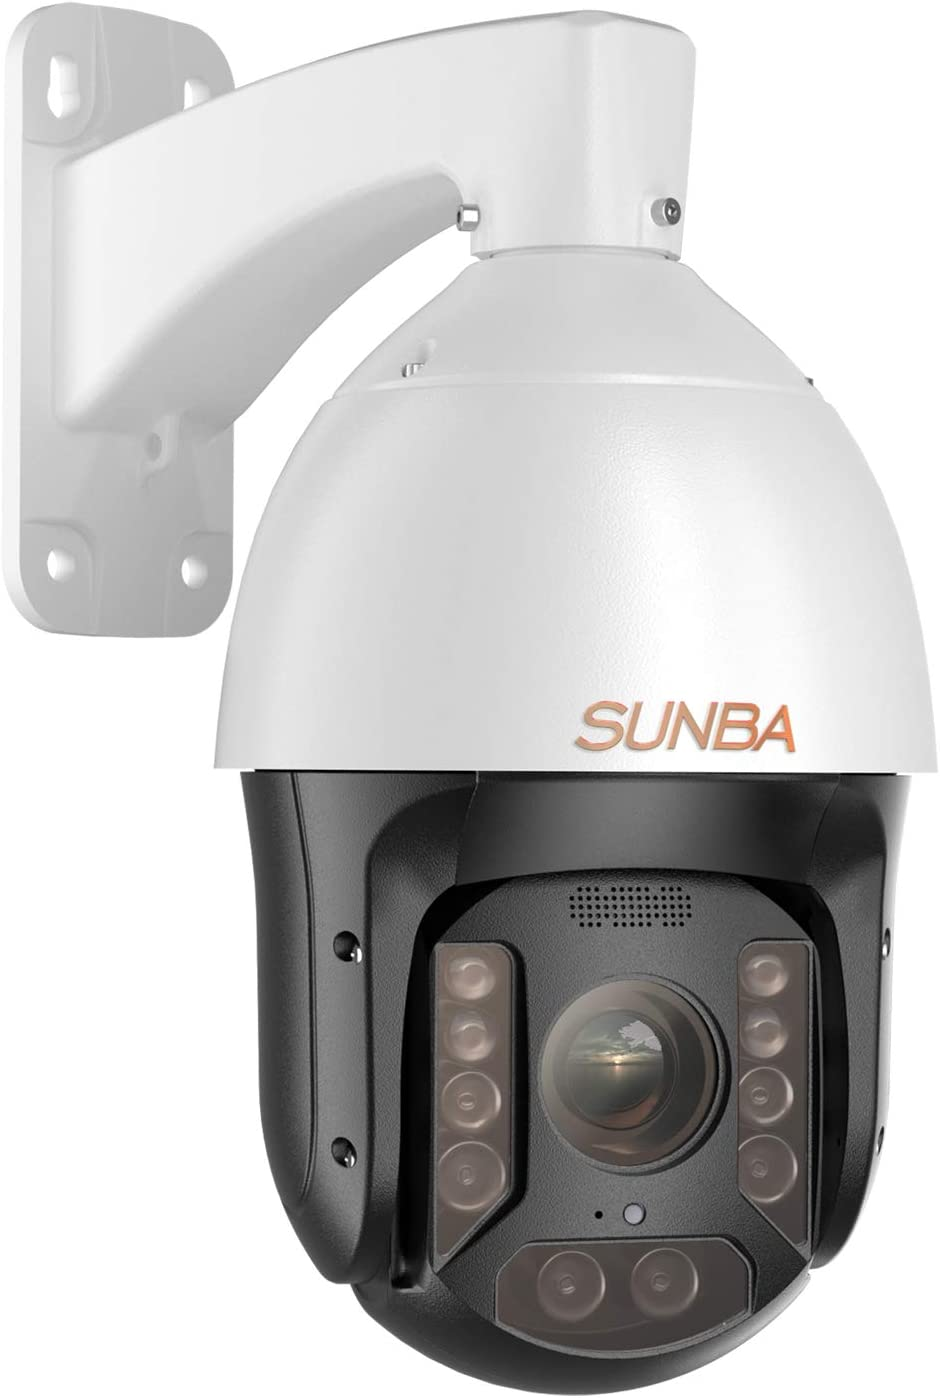 SUNBA PoE+ PTZ IP Camera Outdoor, 25X Optical Zoom 1080p@60fps High Speed Dome Security Camera, Two-Way Audio and Long Range Infrared Night Vision up to 1000ft (P625, Performance Series)